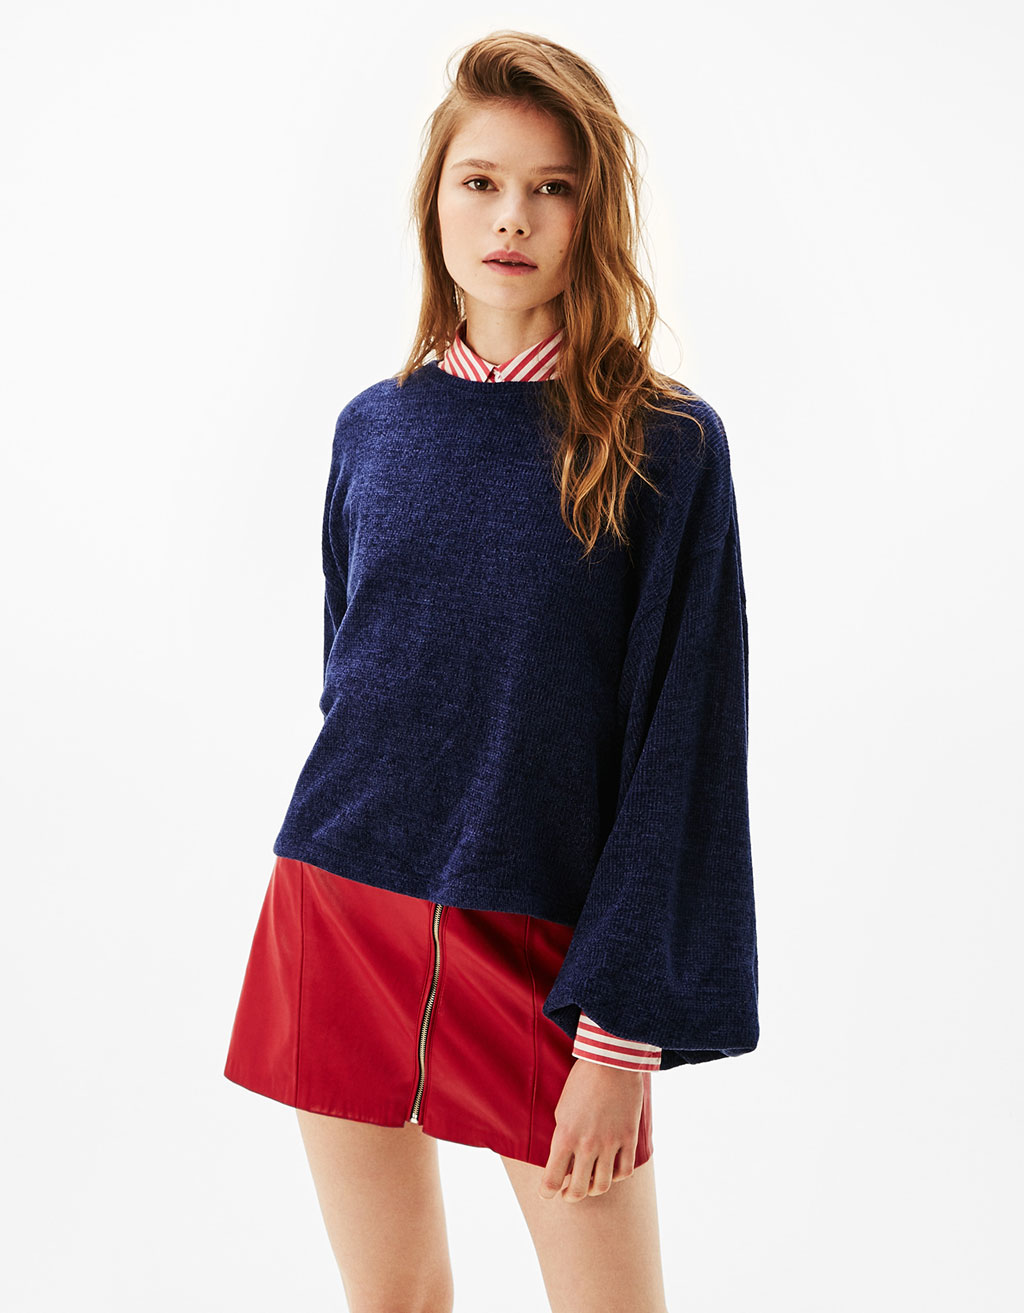 Cropped chenille sweater with full sleeves